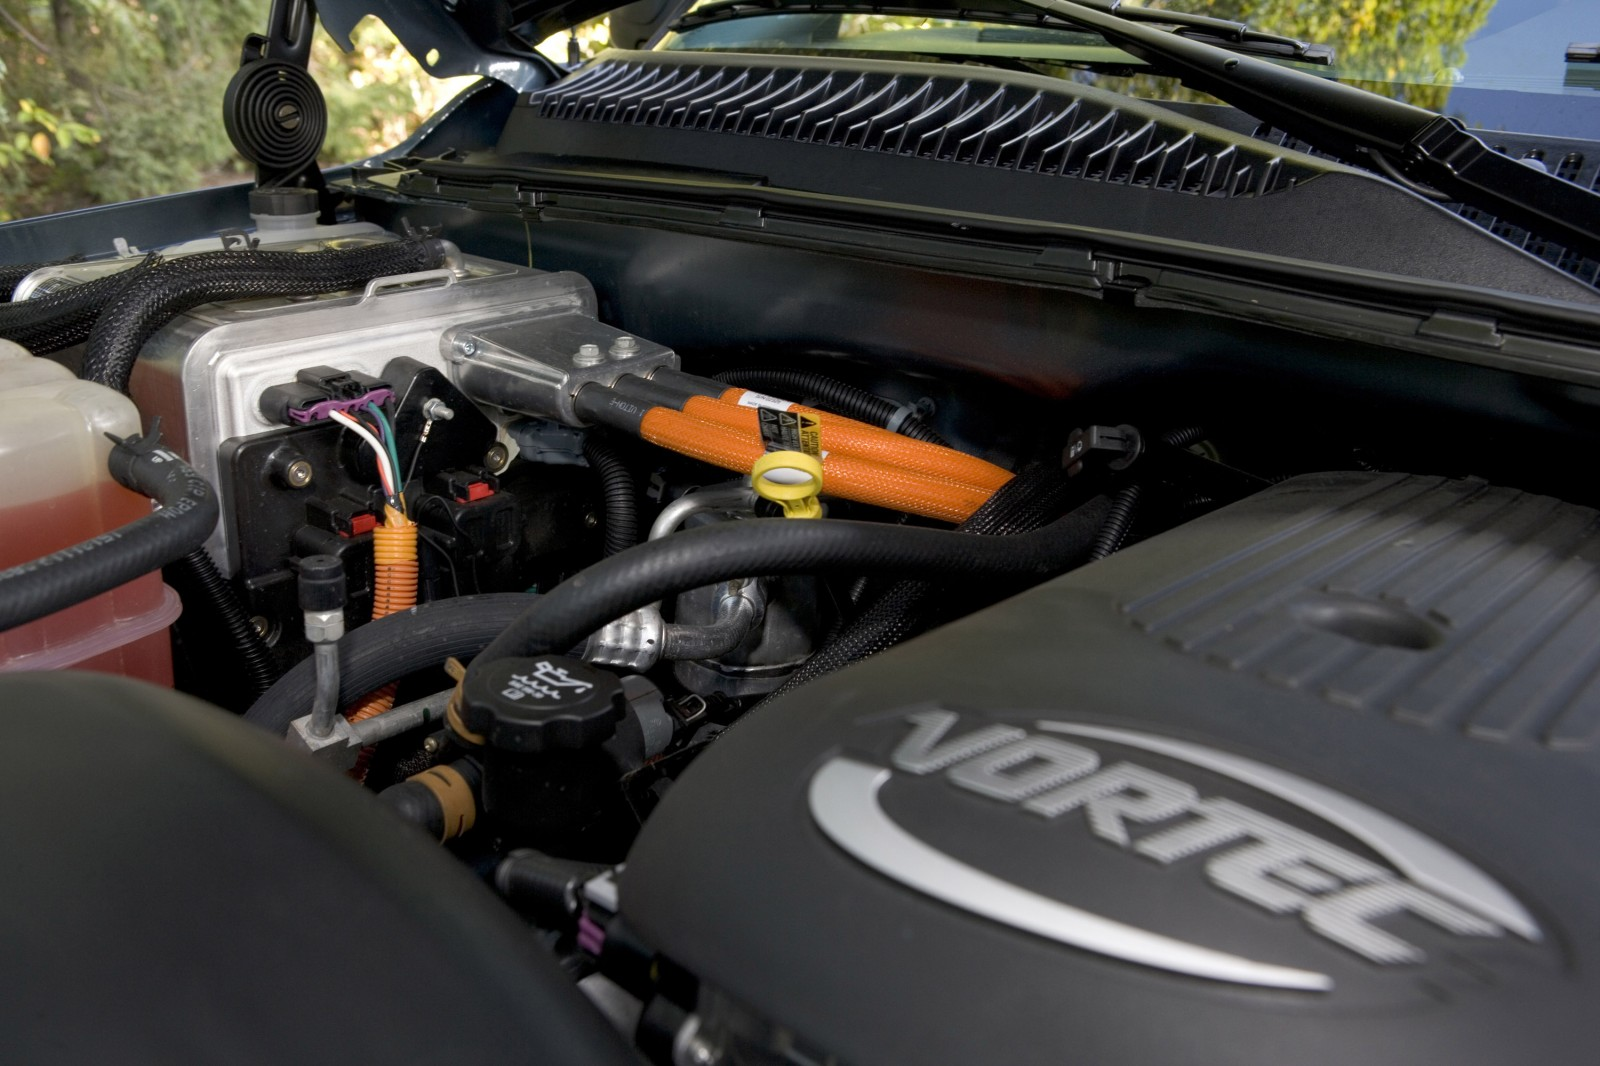 GMC Sierra 1500 Hybrid engine #4